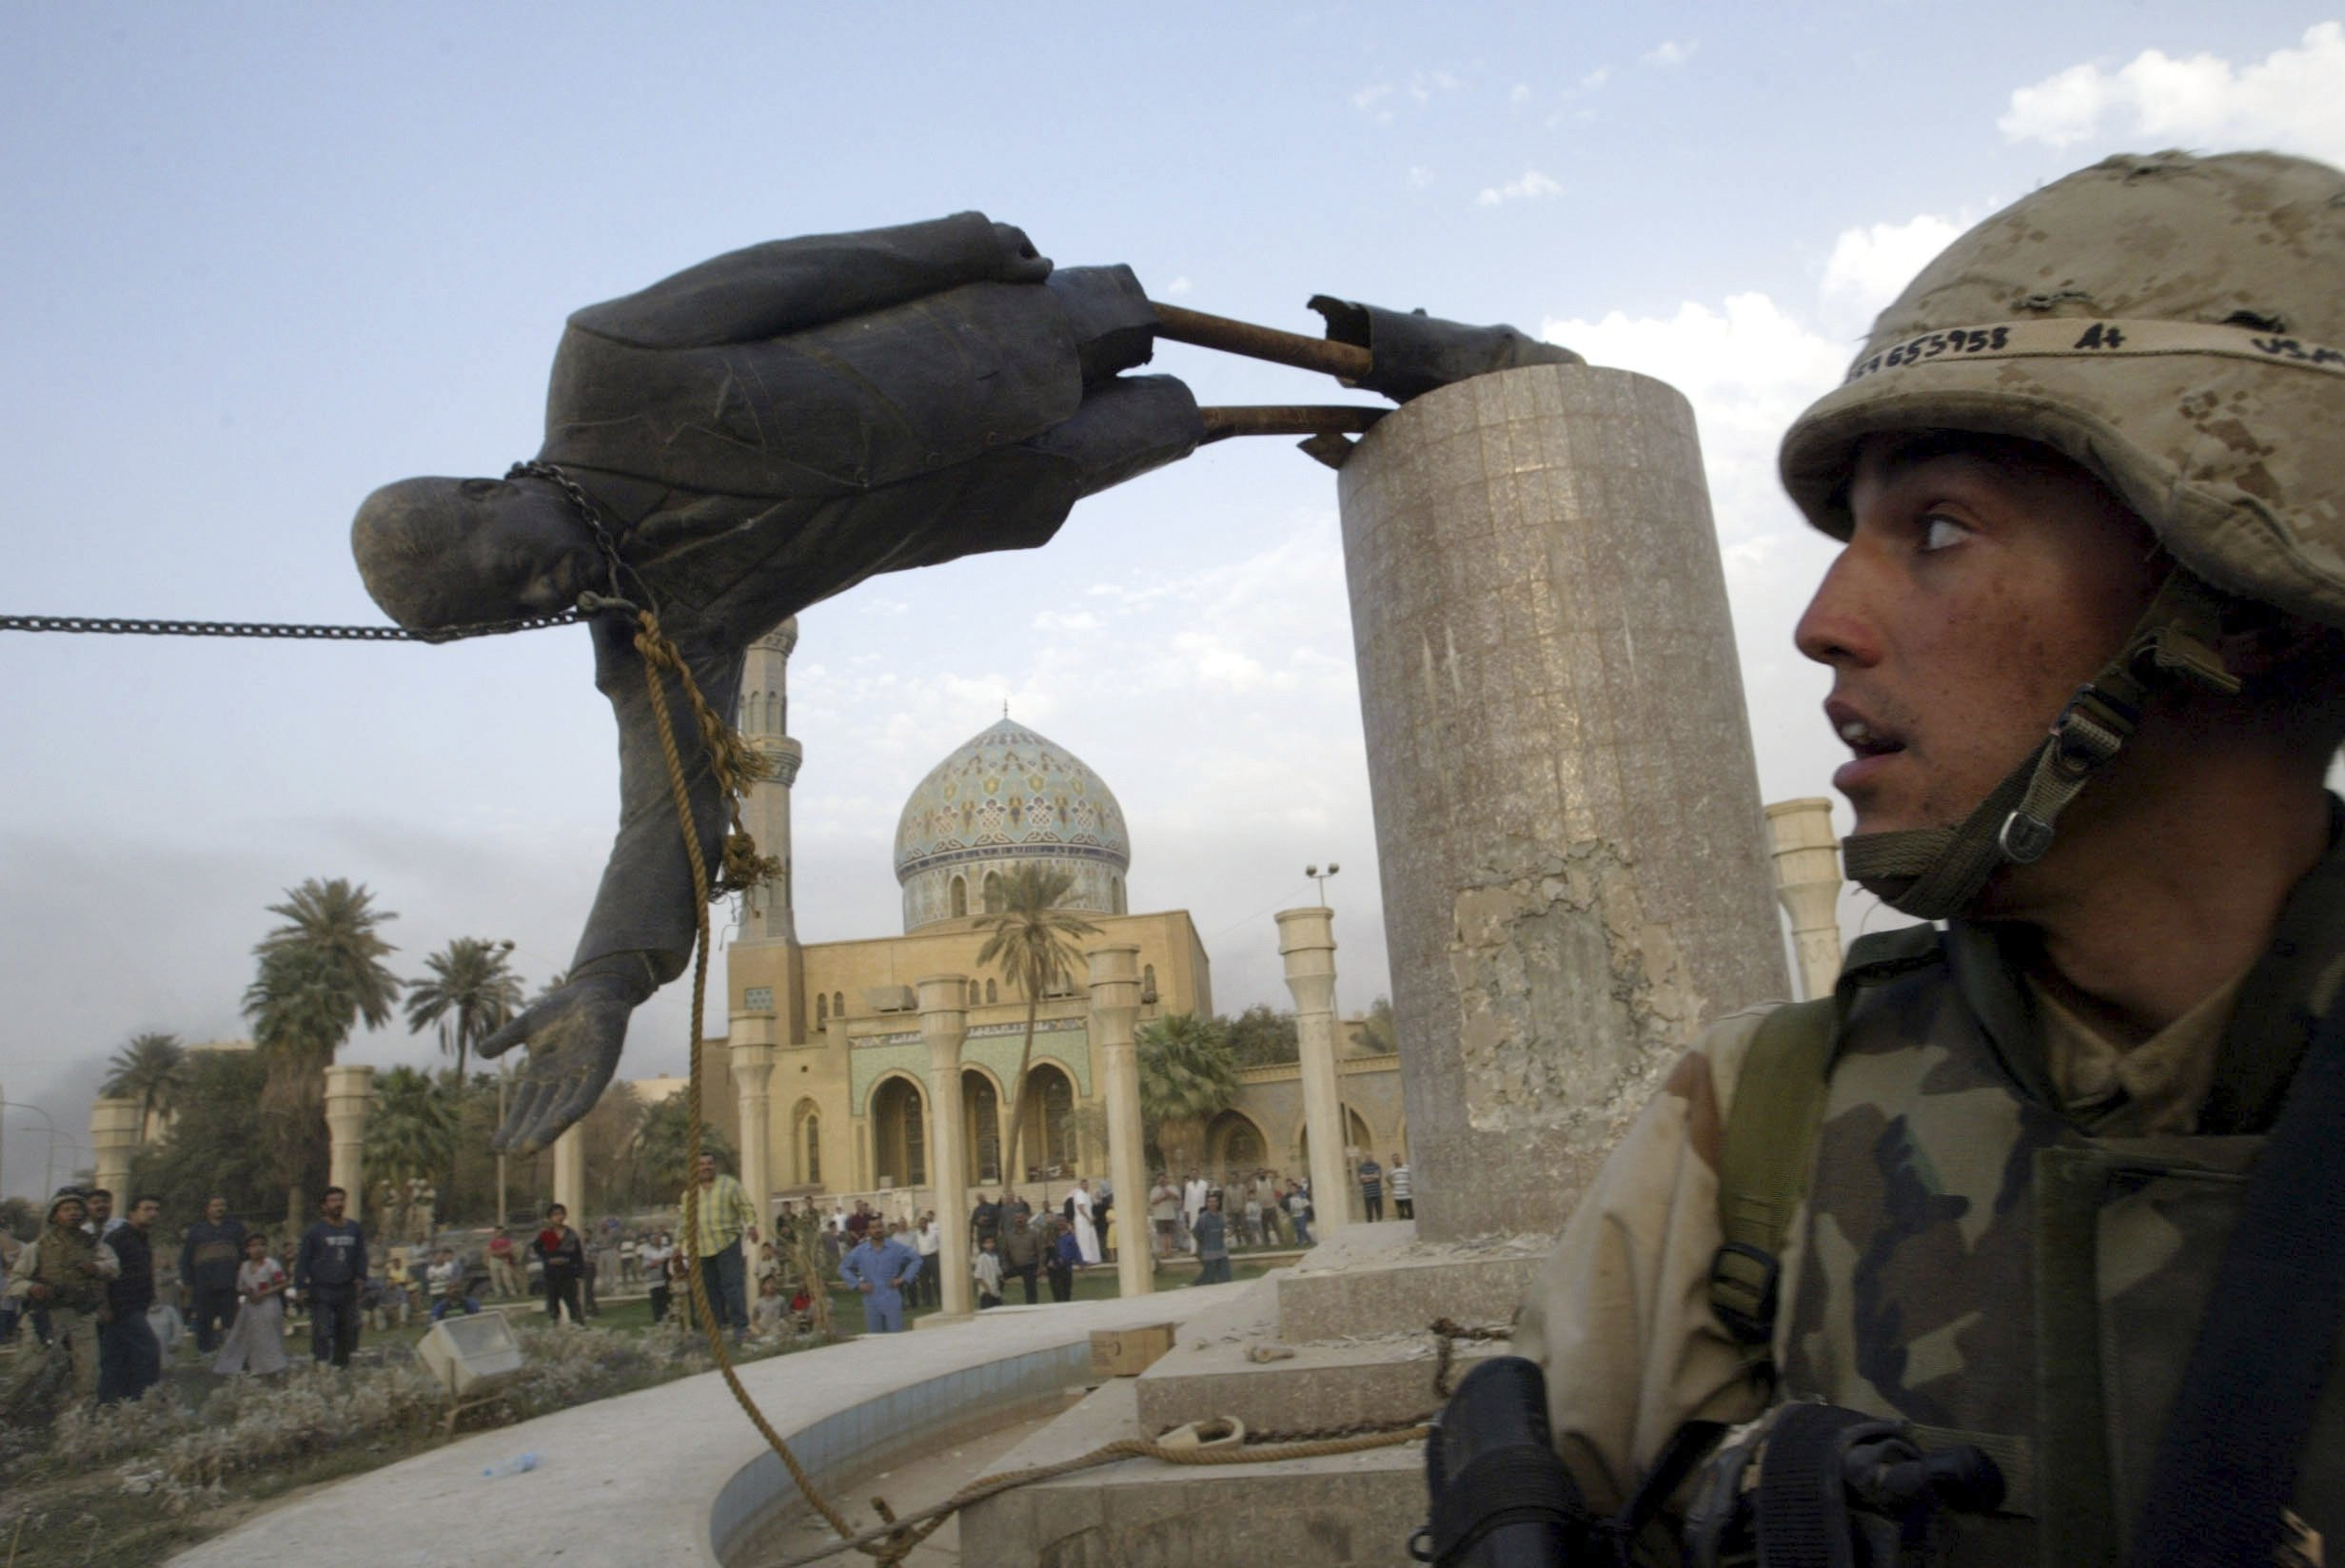 About that toppling of the Saddam Hussein statue in Baghdad ...